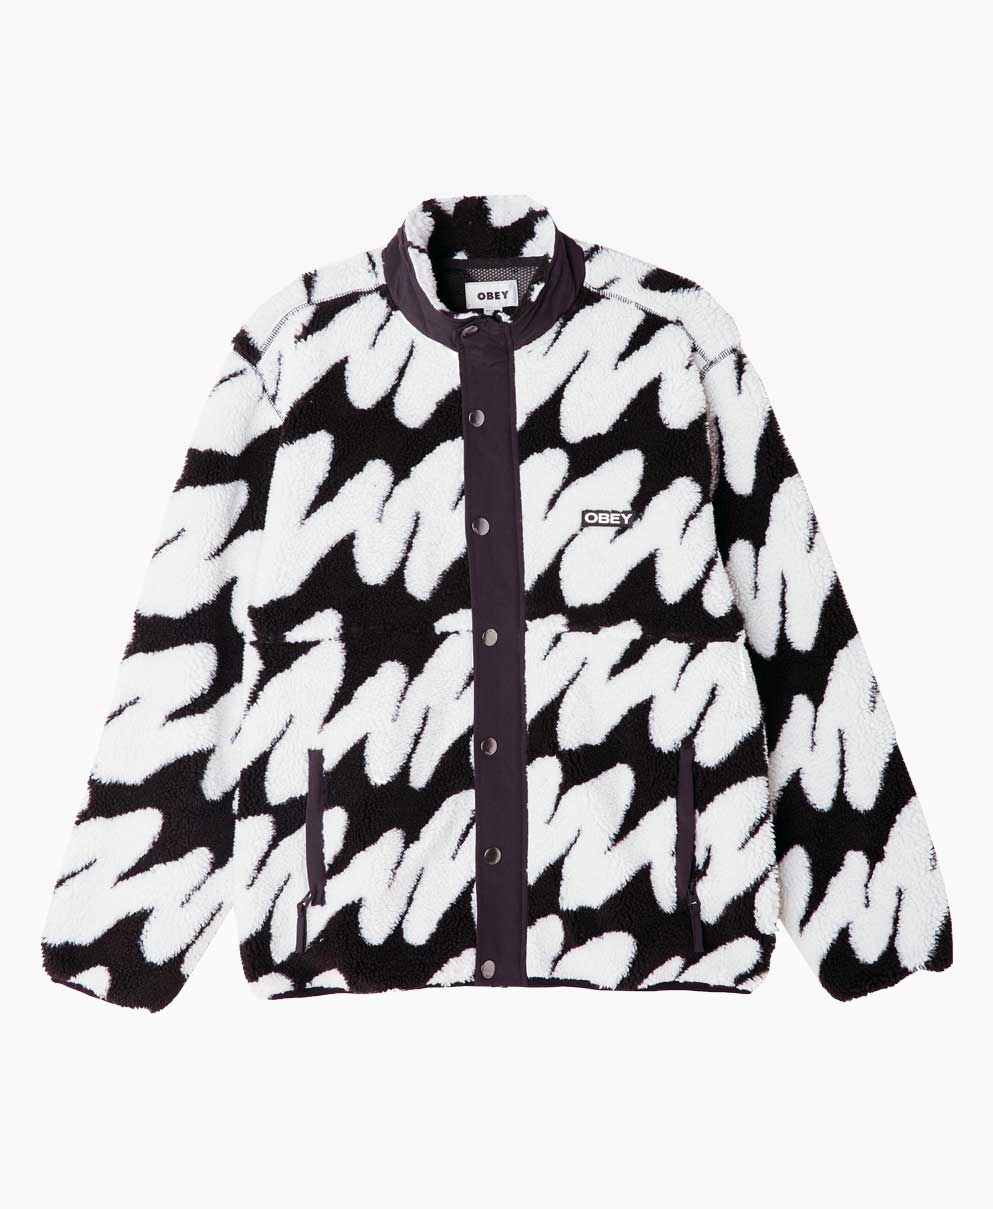 Obey Clothing Hense Sherpa Jacket Front